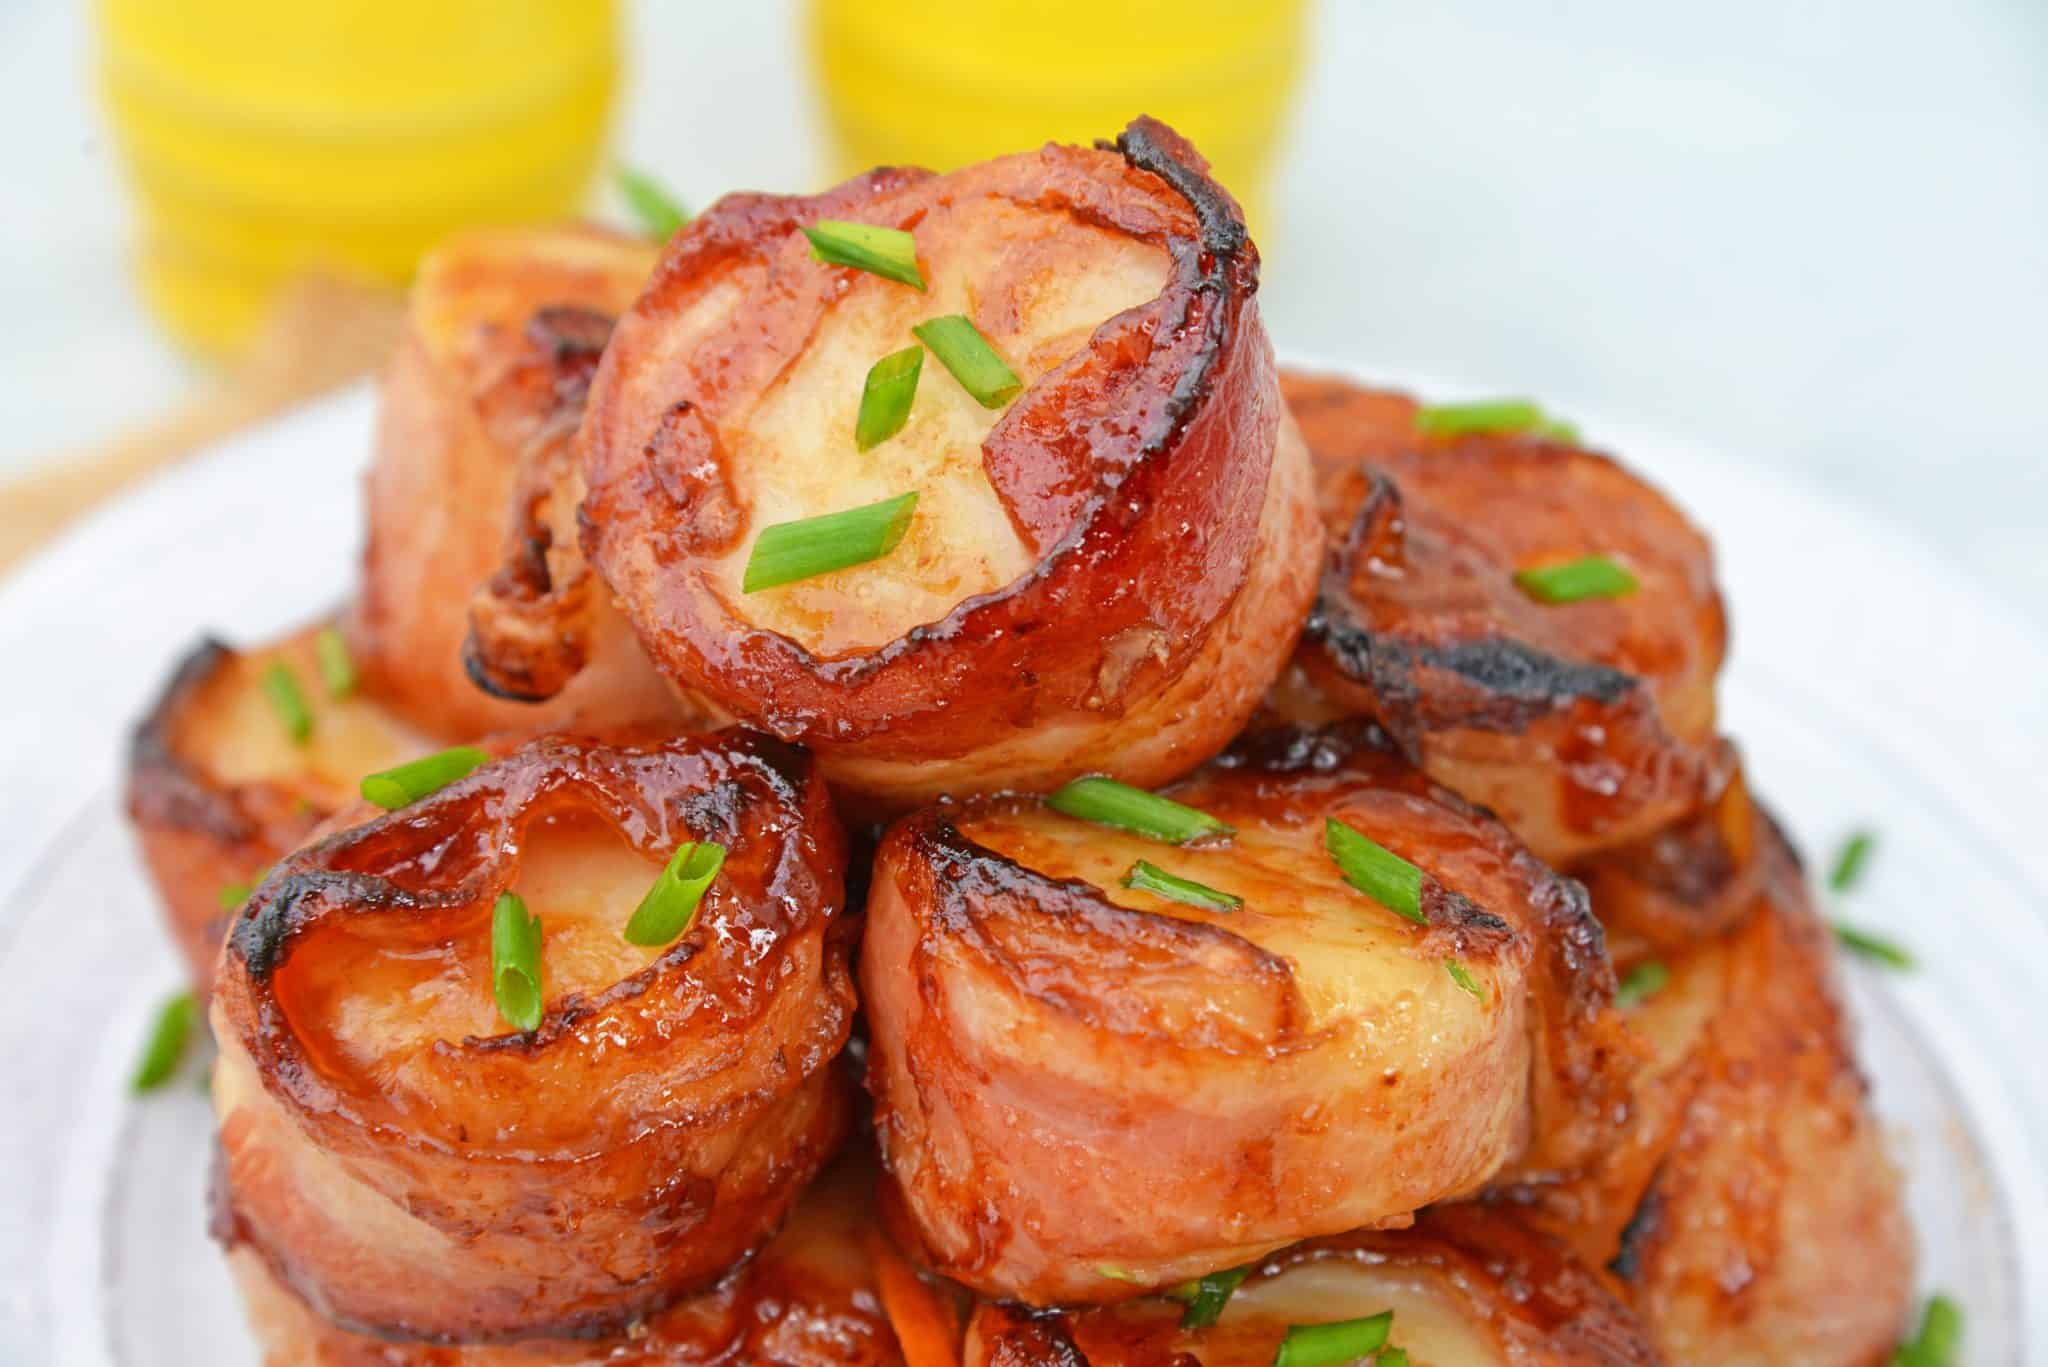 Bbq Bacon Wrapped Scallops How To Make Baked Scallops